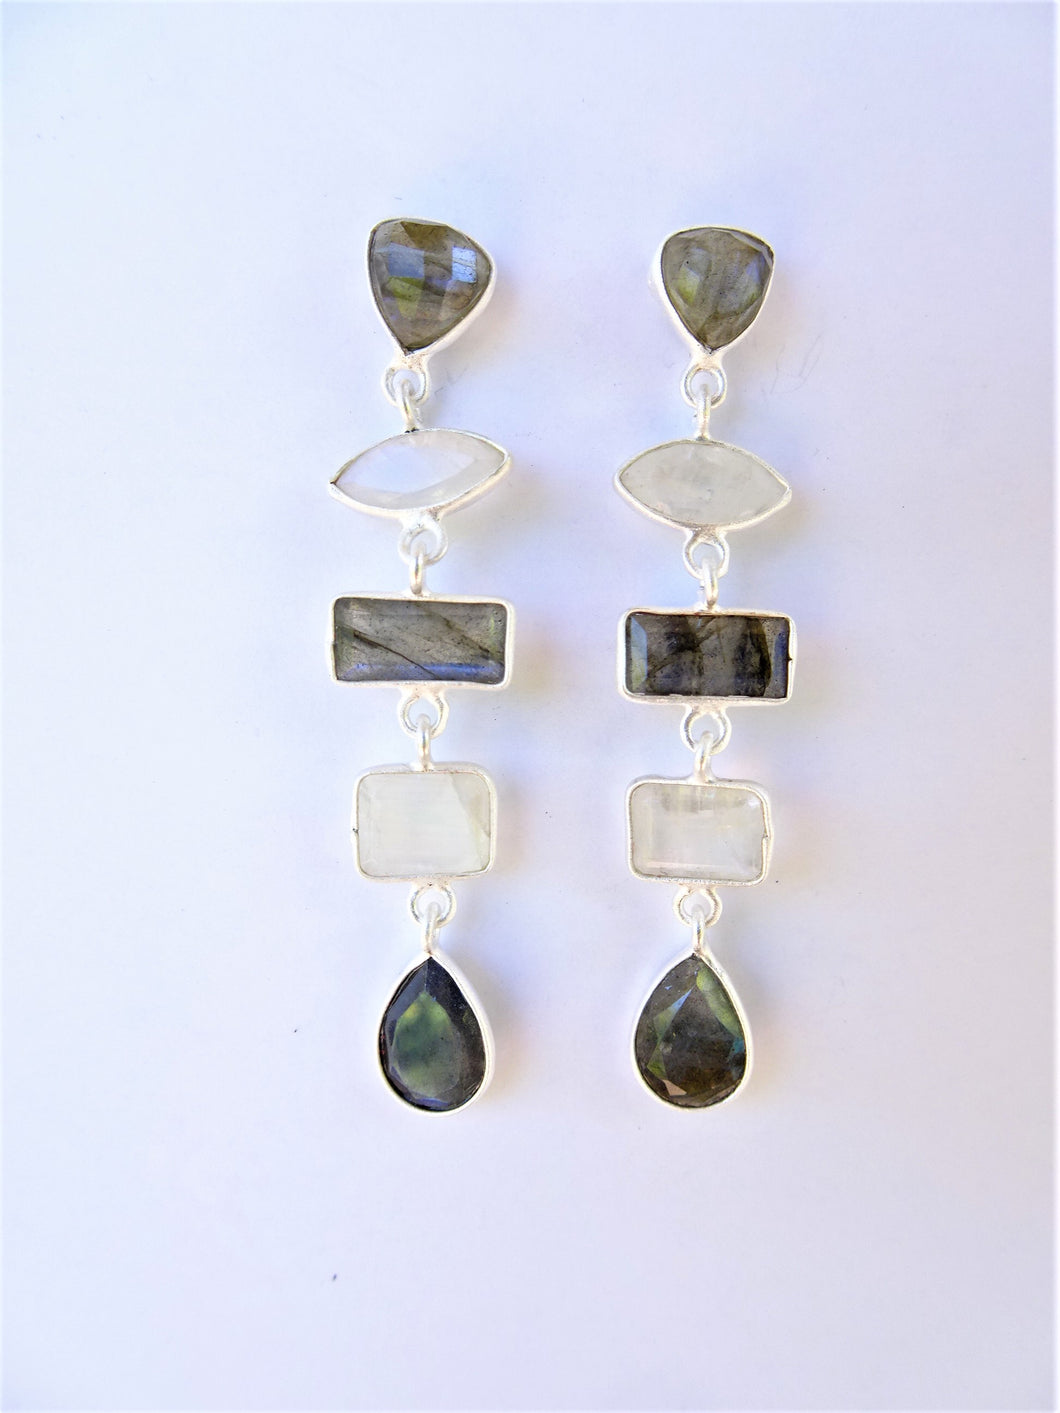 Labradorite and Moonstone Geometric Earrings